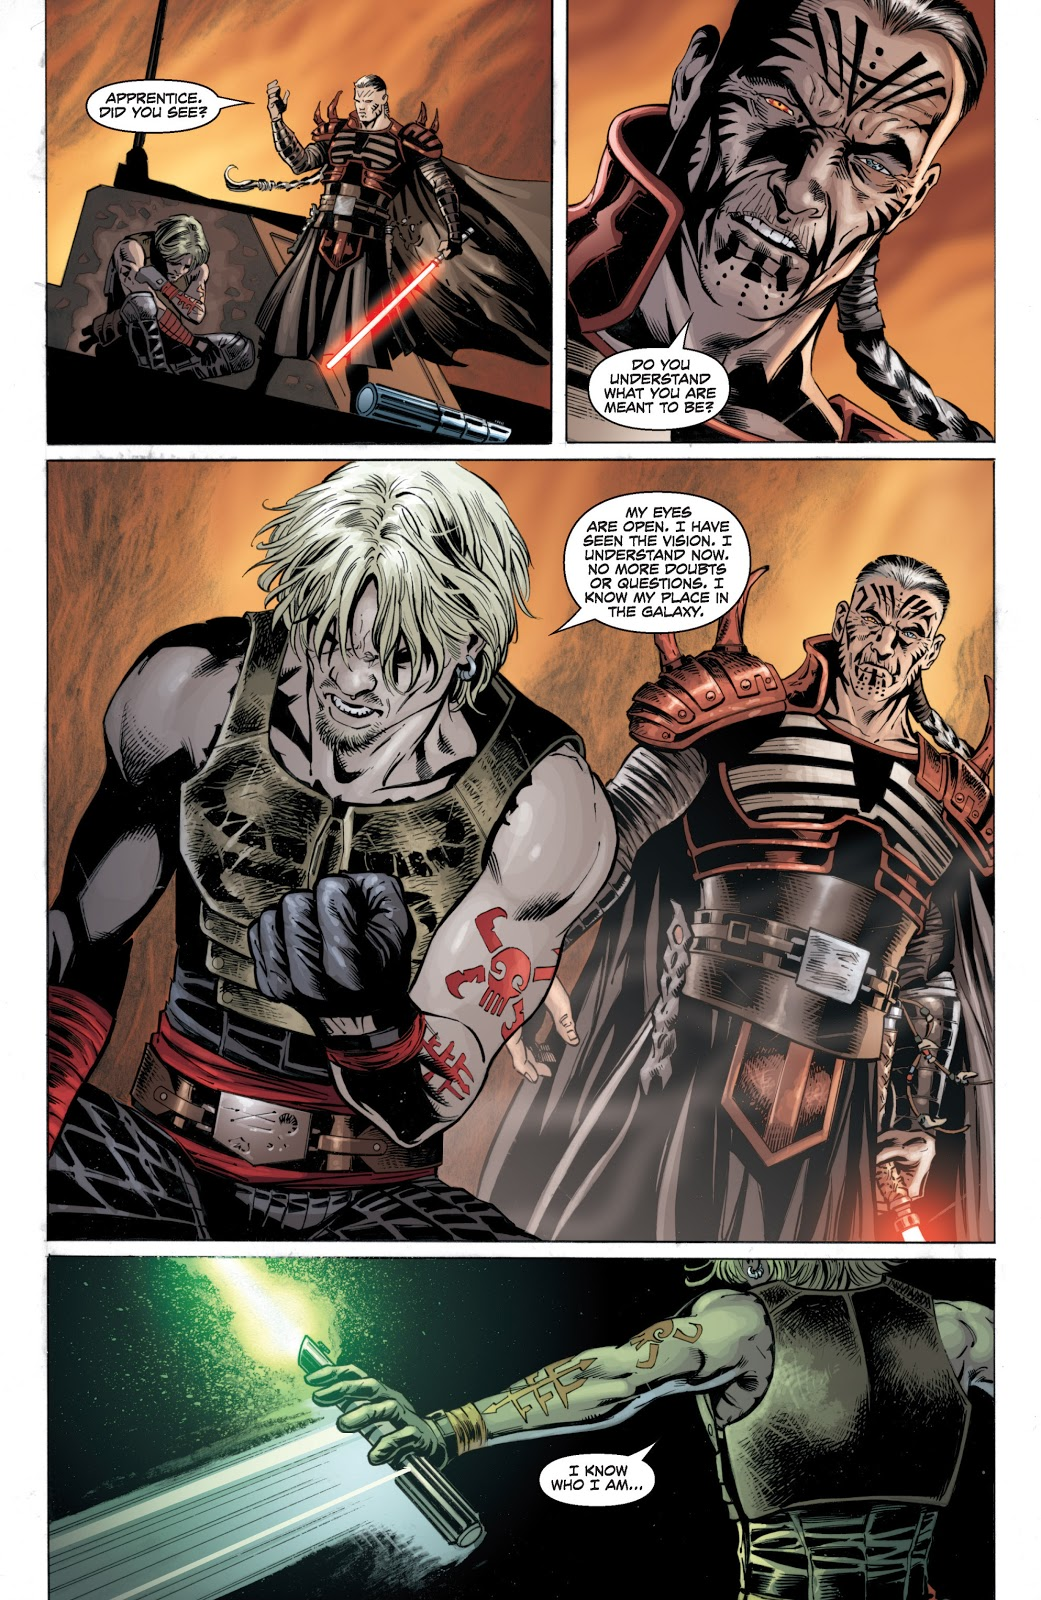 SS - The Tyrannical Ten - Darth Krayt (Azronger) vs Darth Tyranus (ArkhamAsylum3) - Page 6 Krayt_30